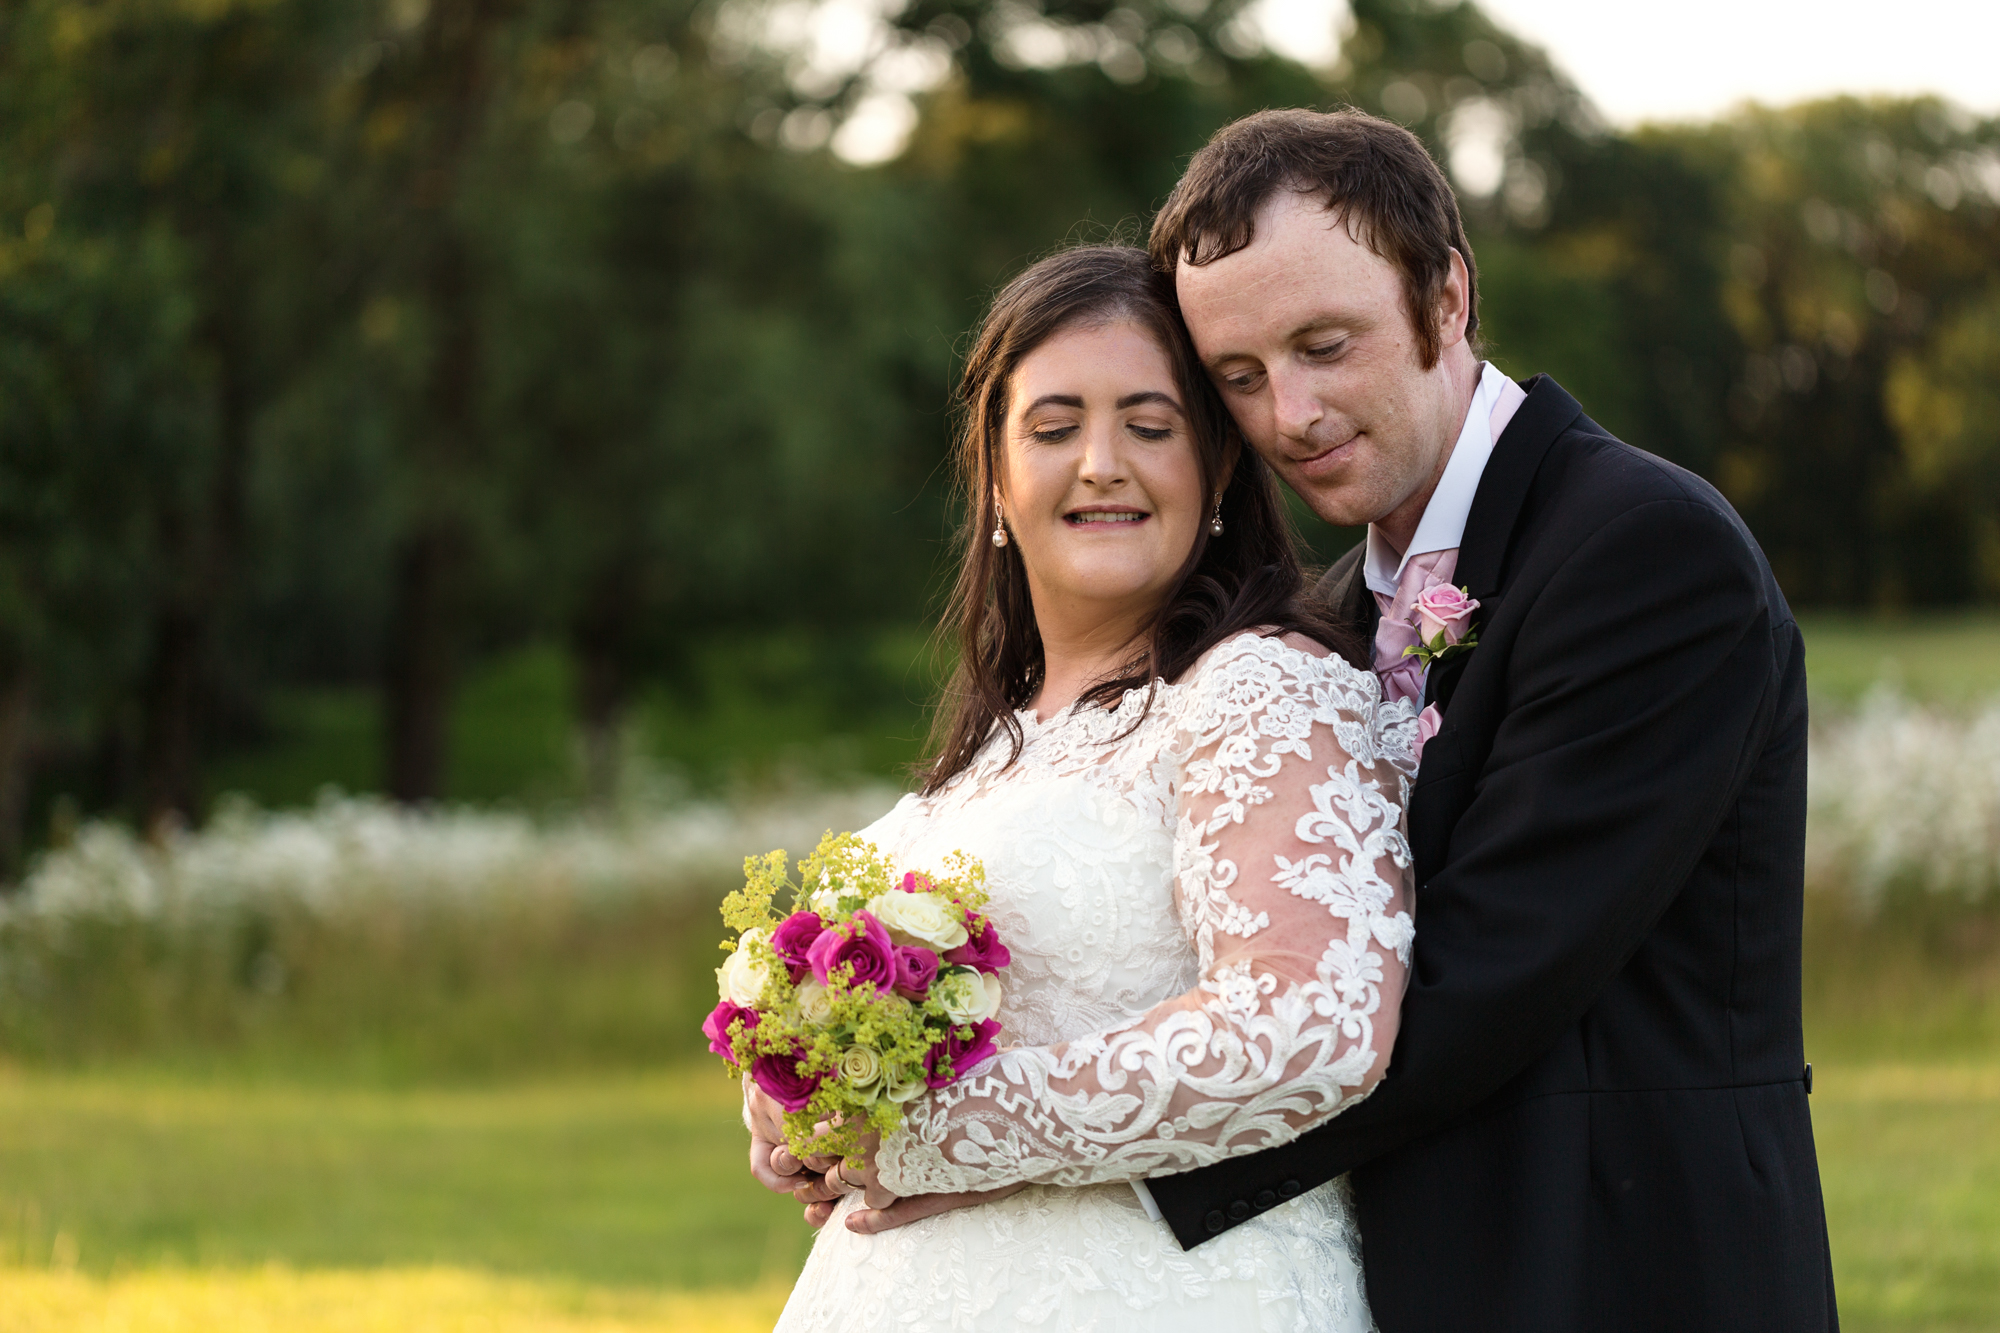 Bride and groom portraits in golden light at Ridgeway Golf club, Caerphilly mountain